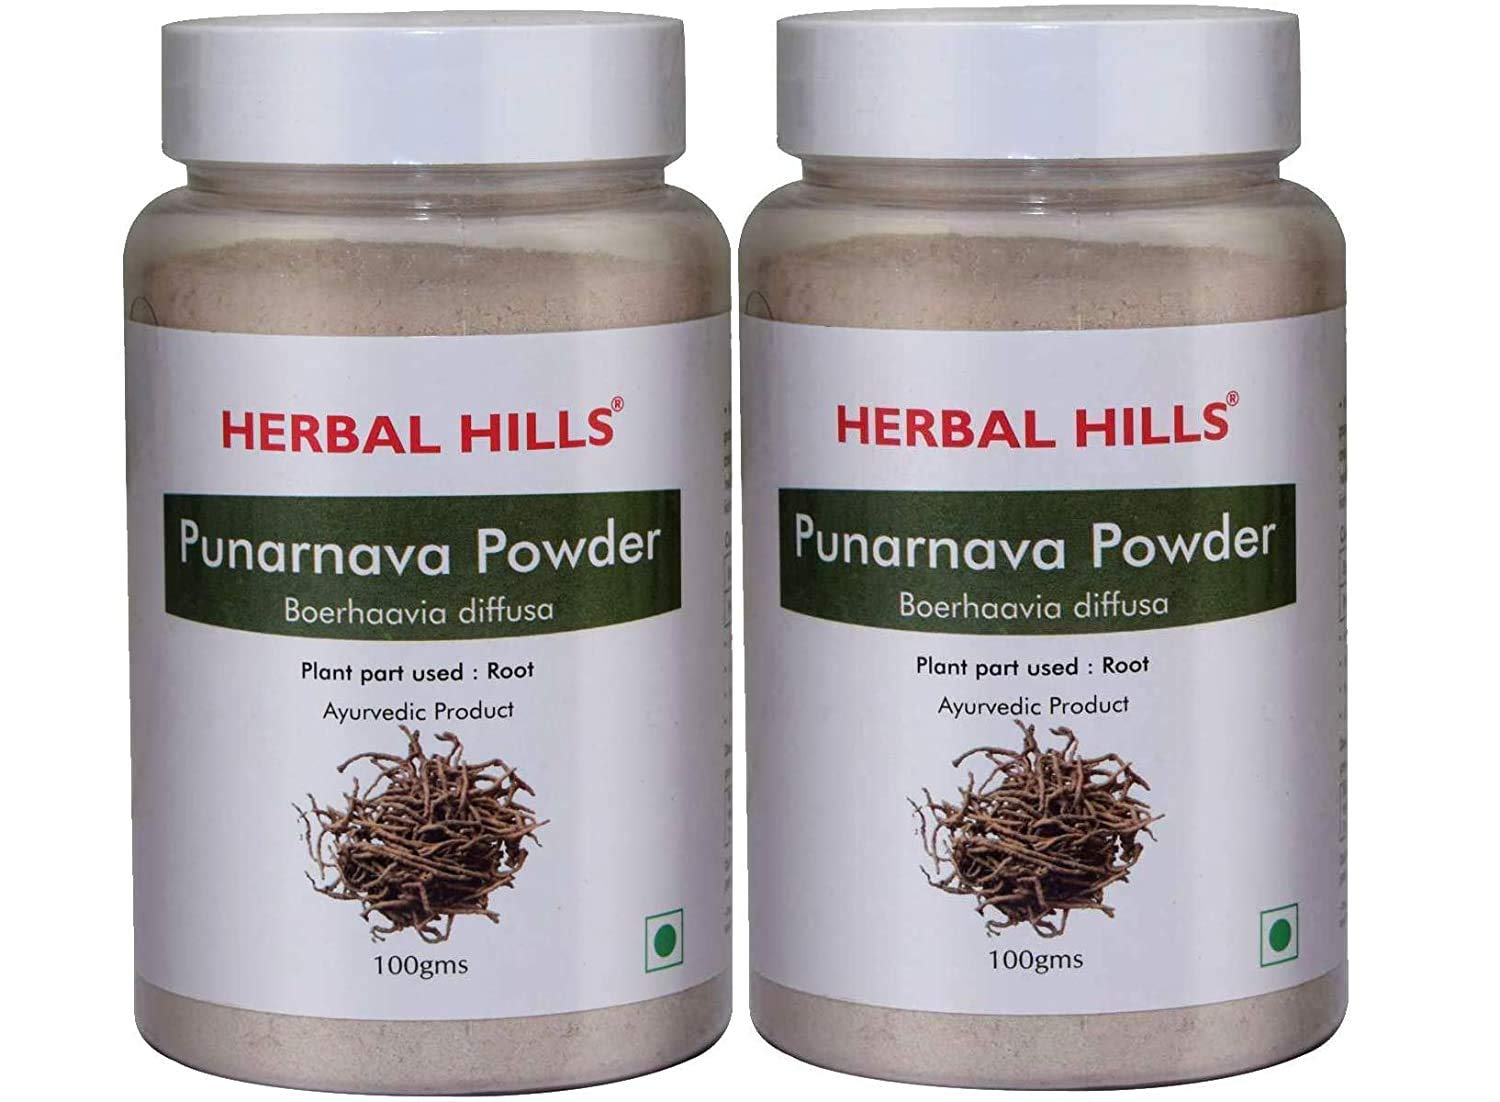 Herbal Hills Punarnava Powder 100g Each Pack Of 2 Boerhavia Diffusa Punarnava Root Powder Punarnava Urinary Wellness And Kidney Rejuvenation Amazon In Health Personal Care